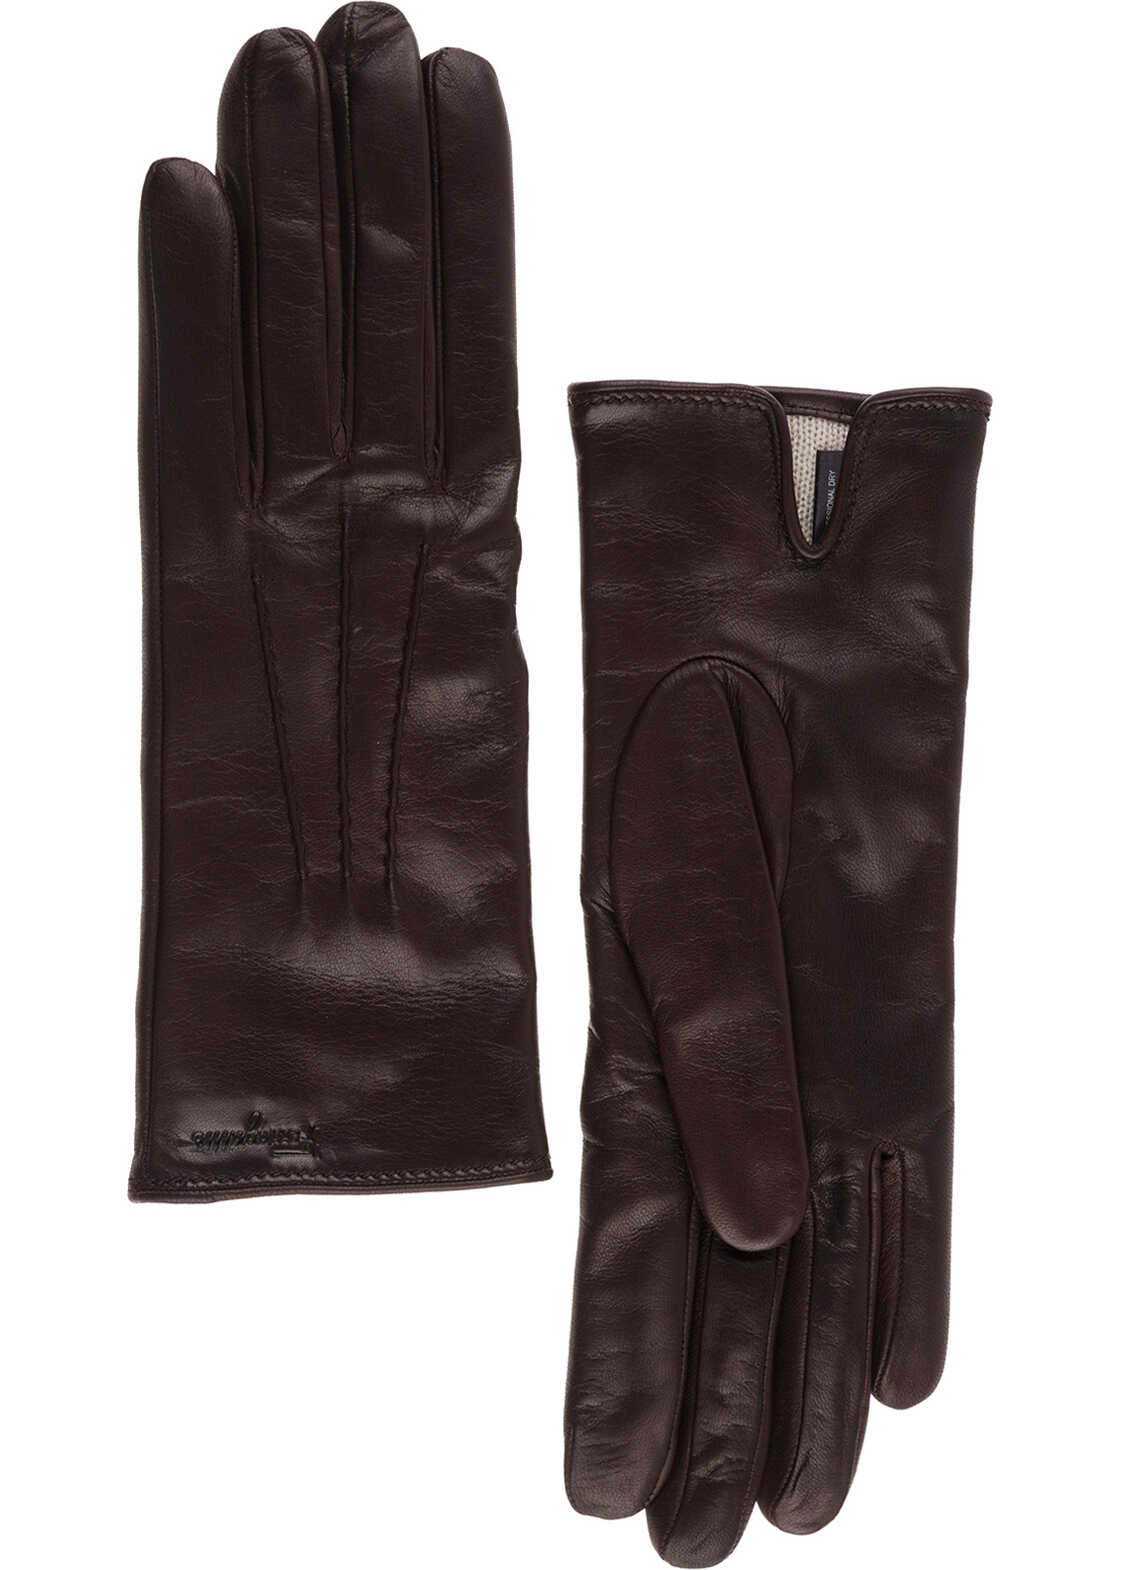 Salvatore Ferragamo Leather Gloves Brown